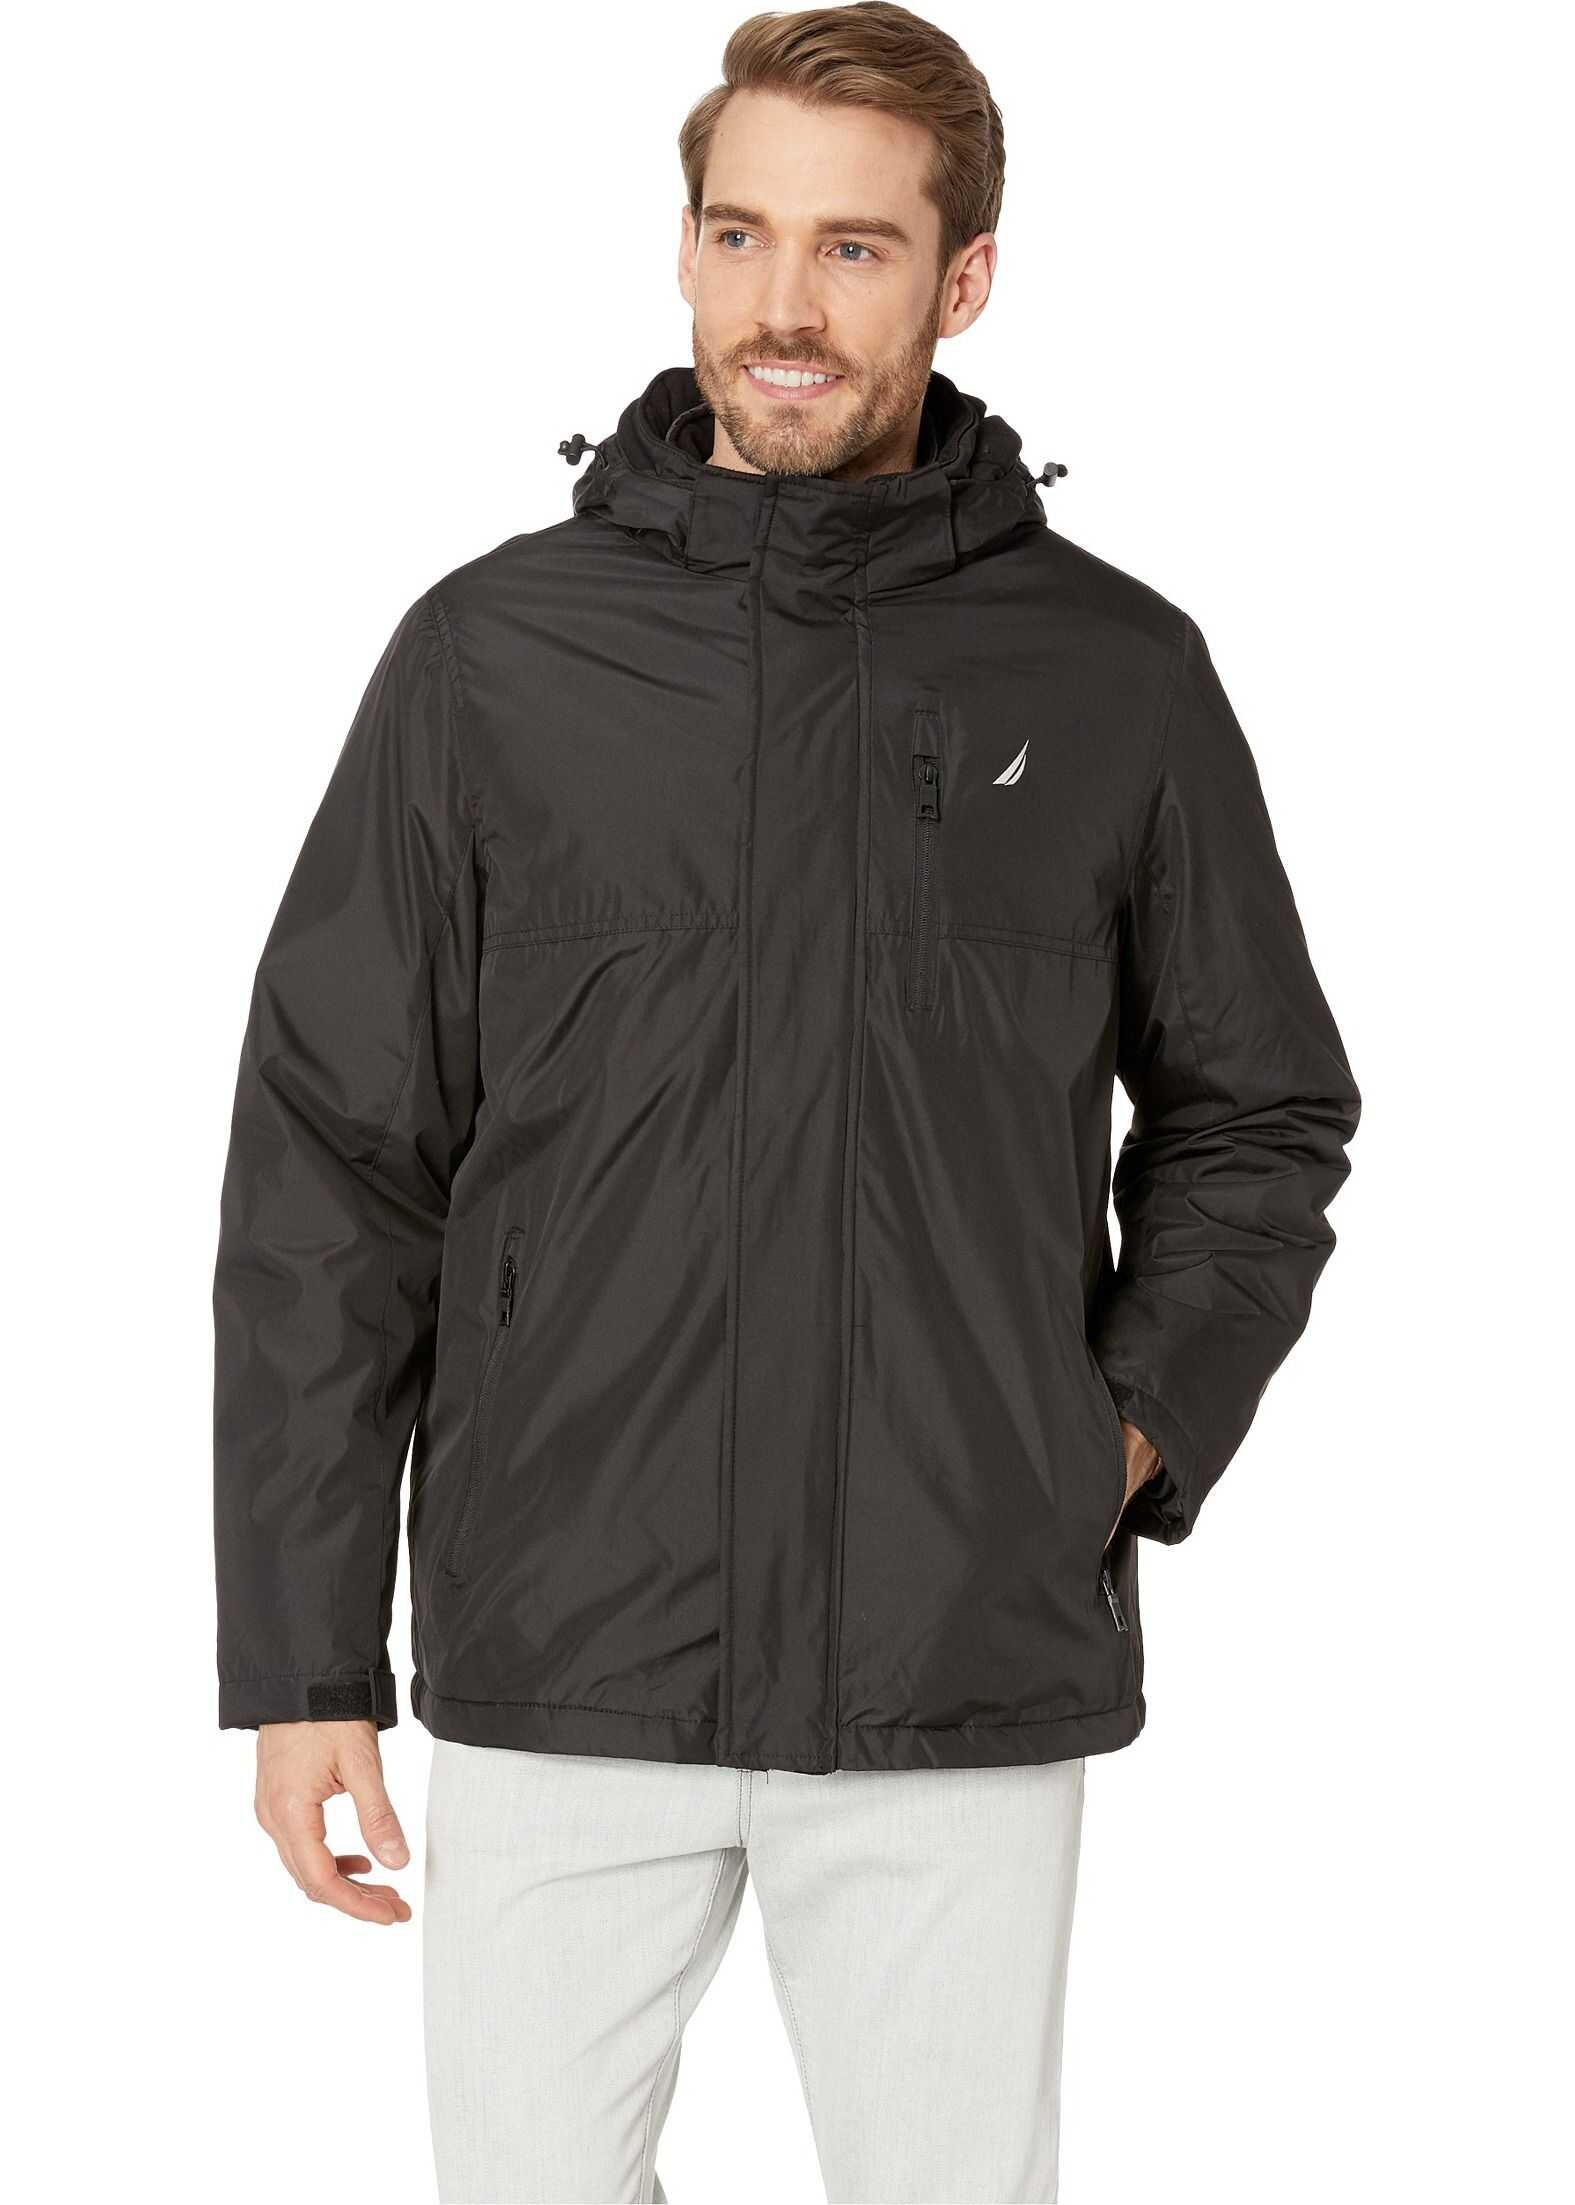 Systems 3-in-1 Jacket